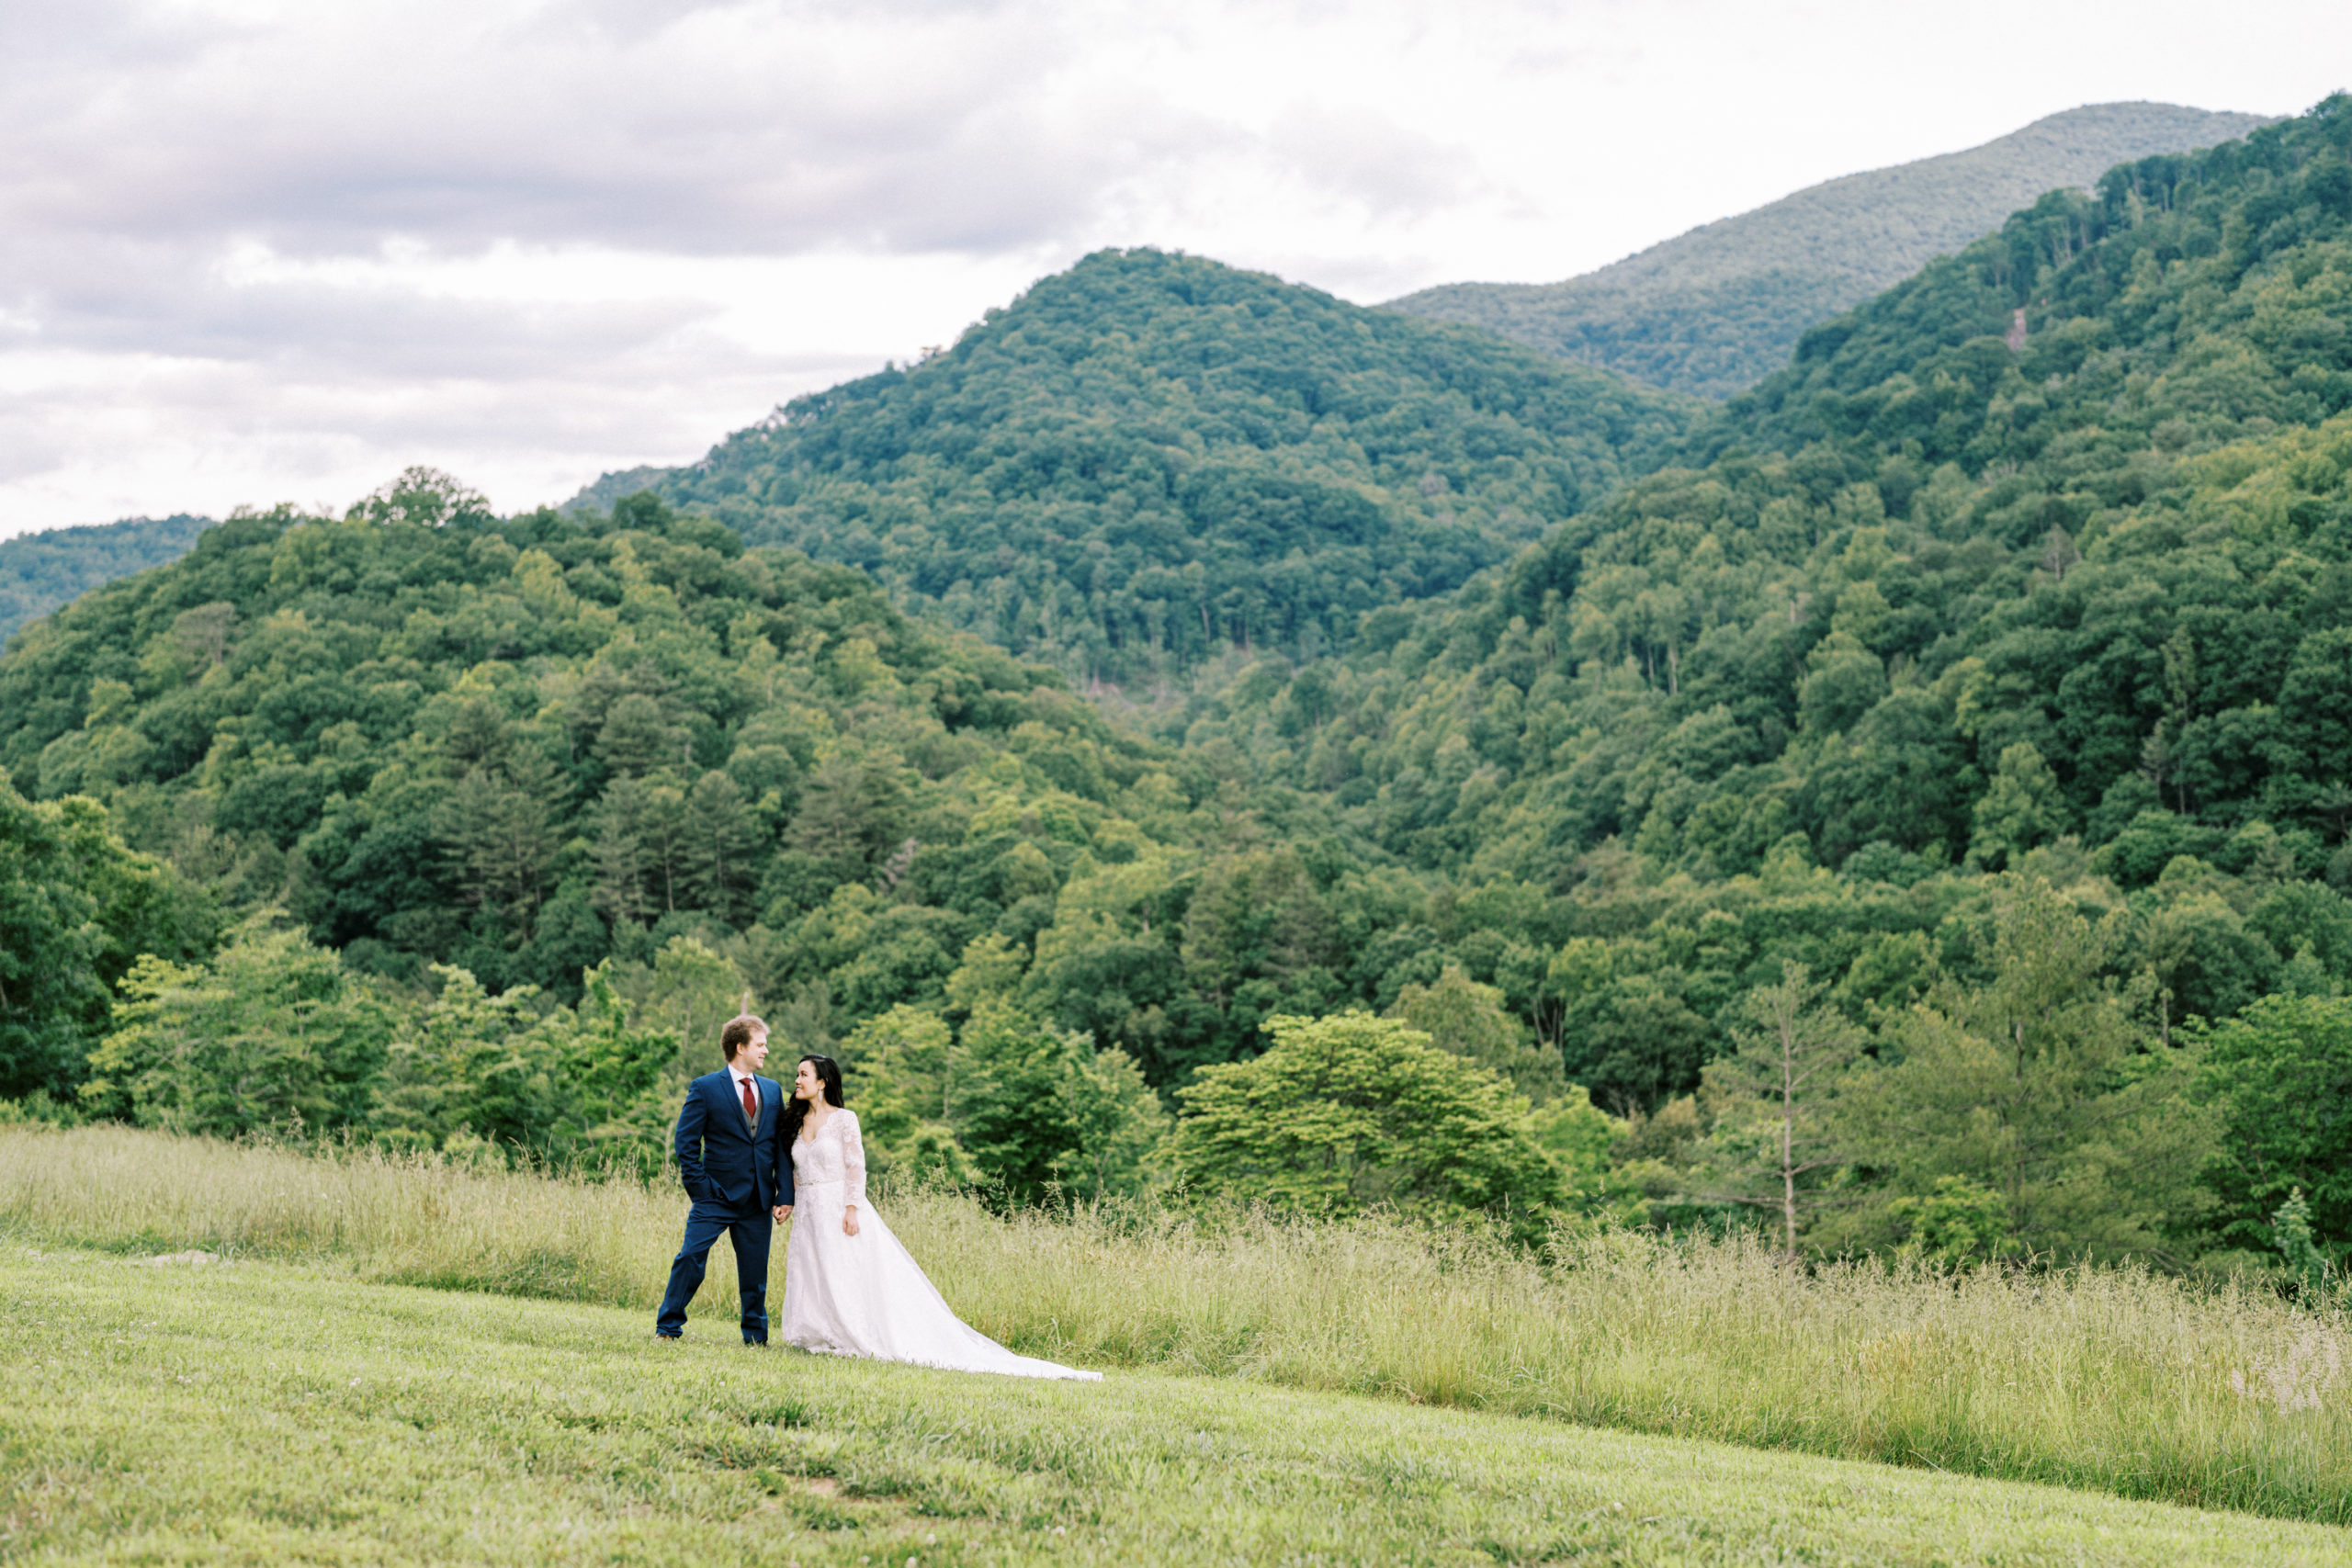 Married couple looks at each other with beautiful mountain views in the background